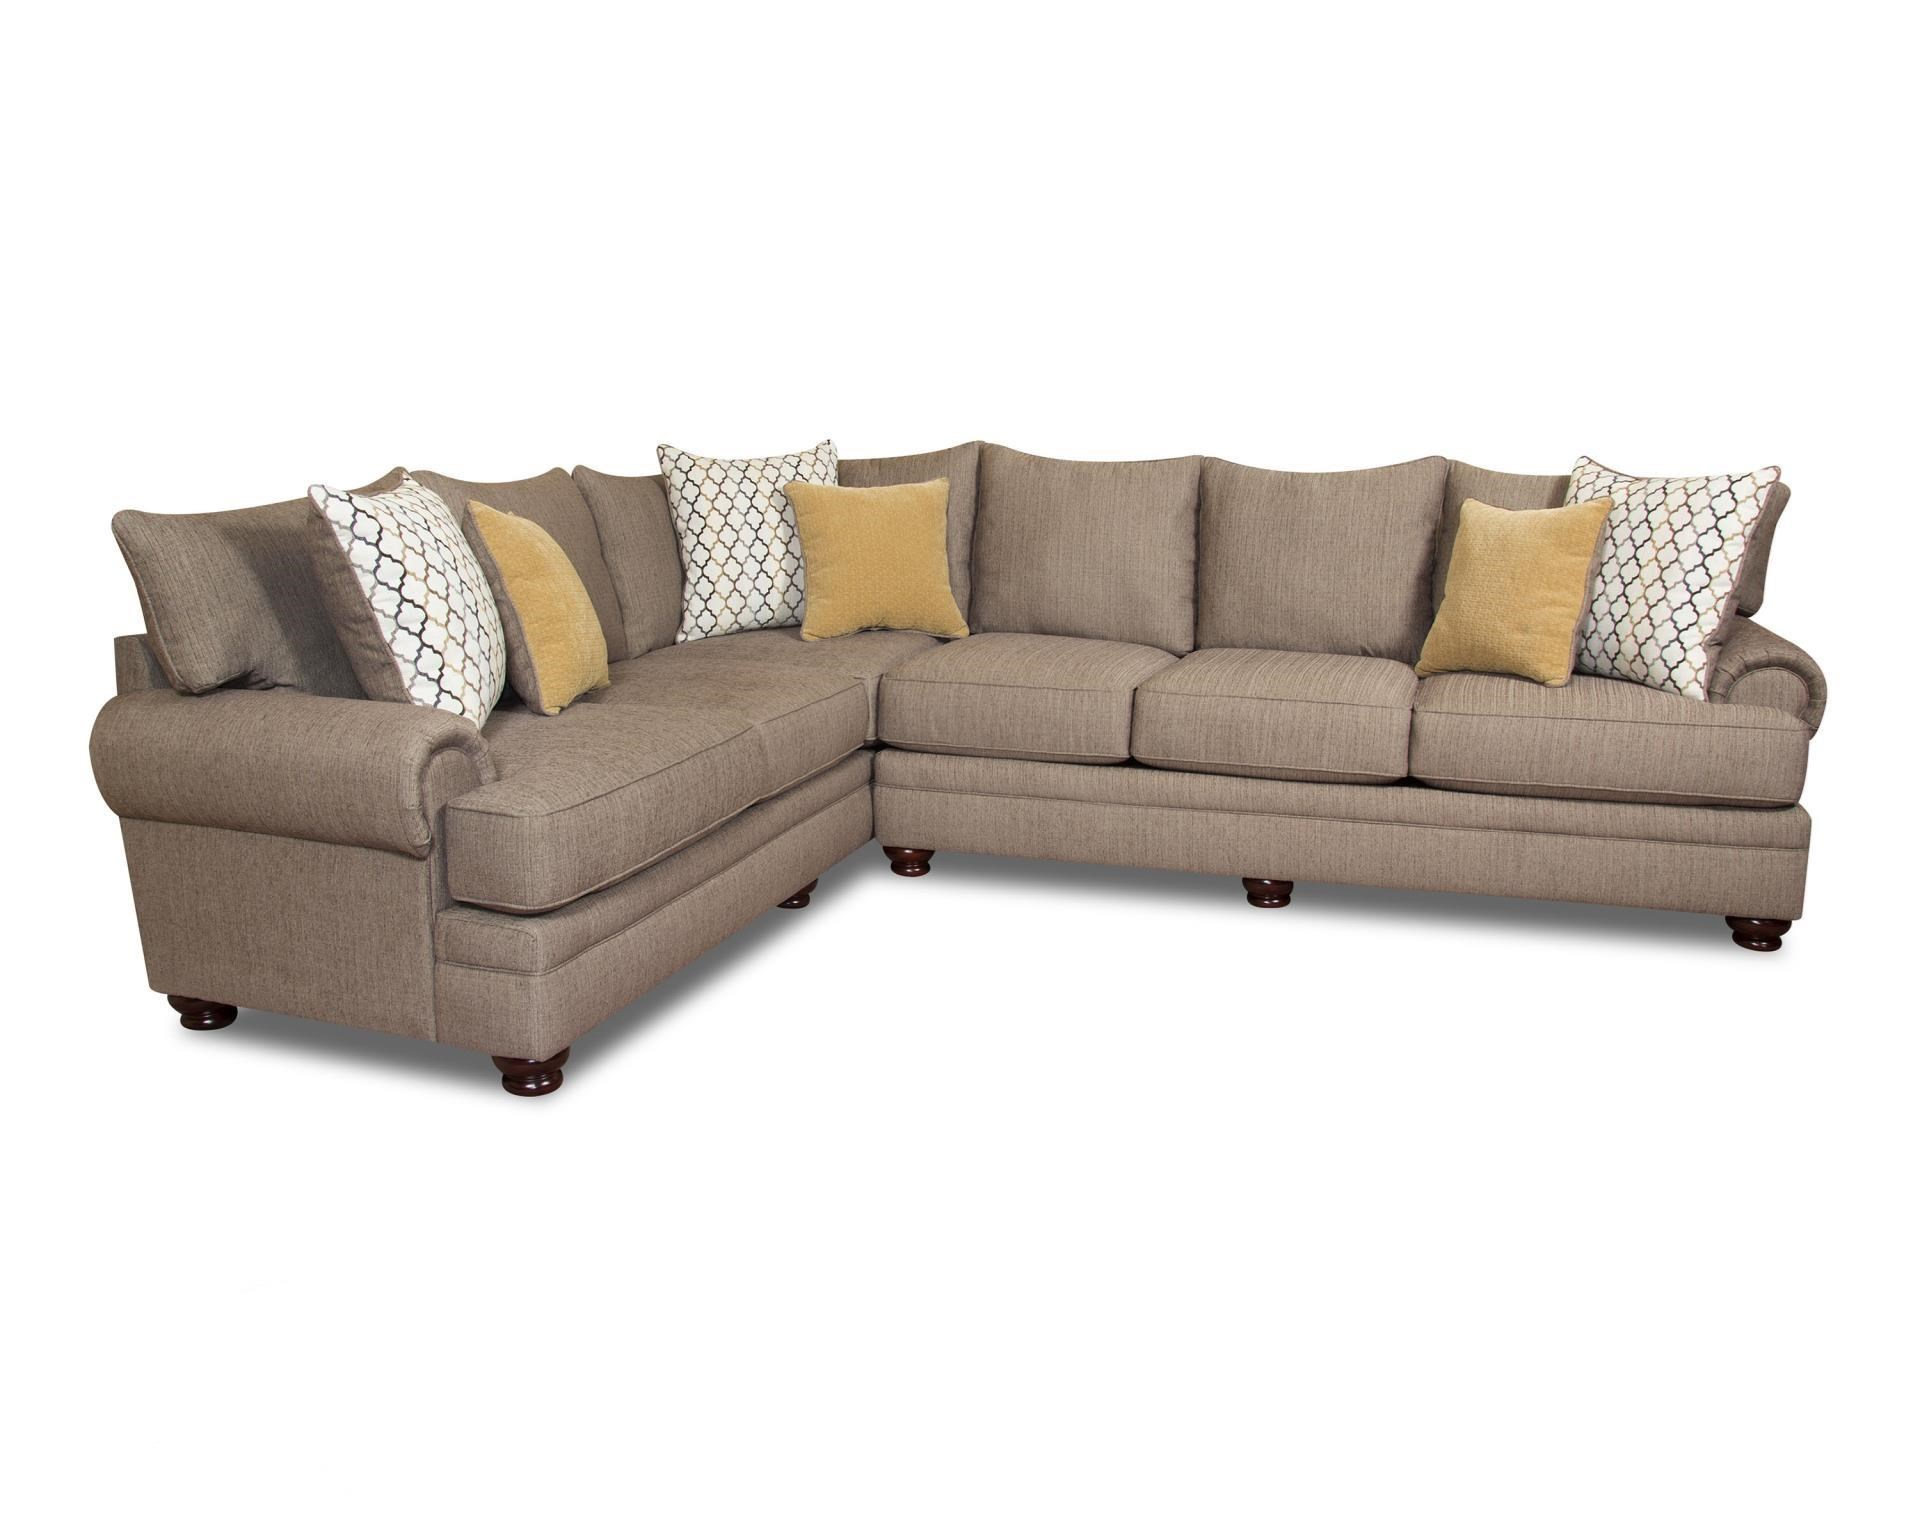 Cosette 2 Piece Sectional Morris Home Sectional Sofas